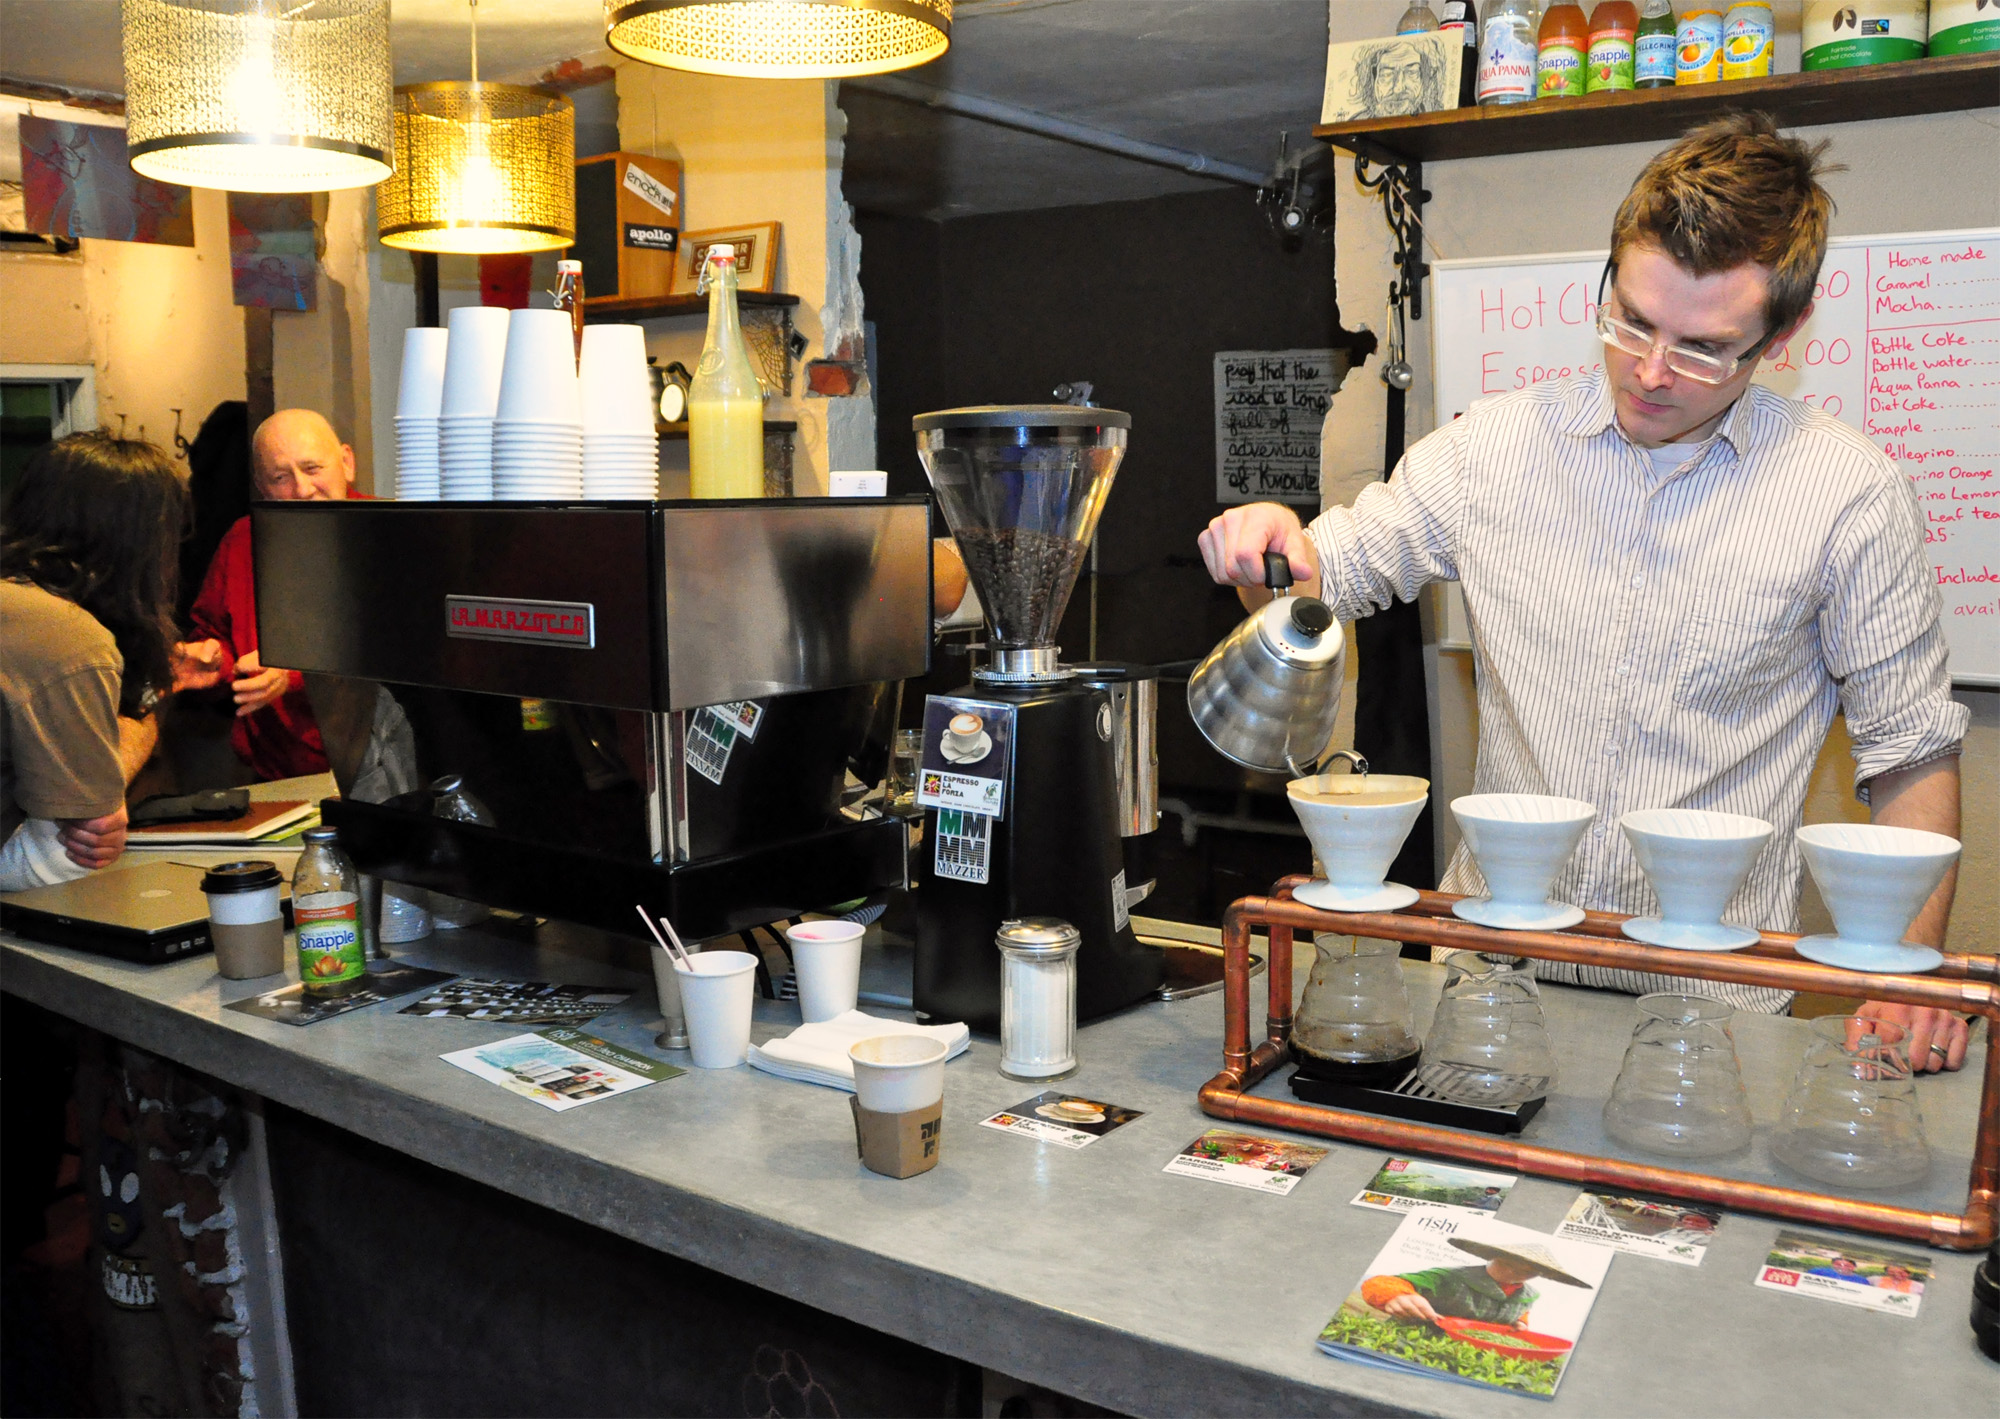 James Yoder serves coffee for the art meetup group